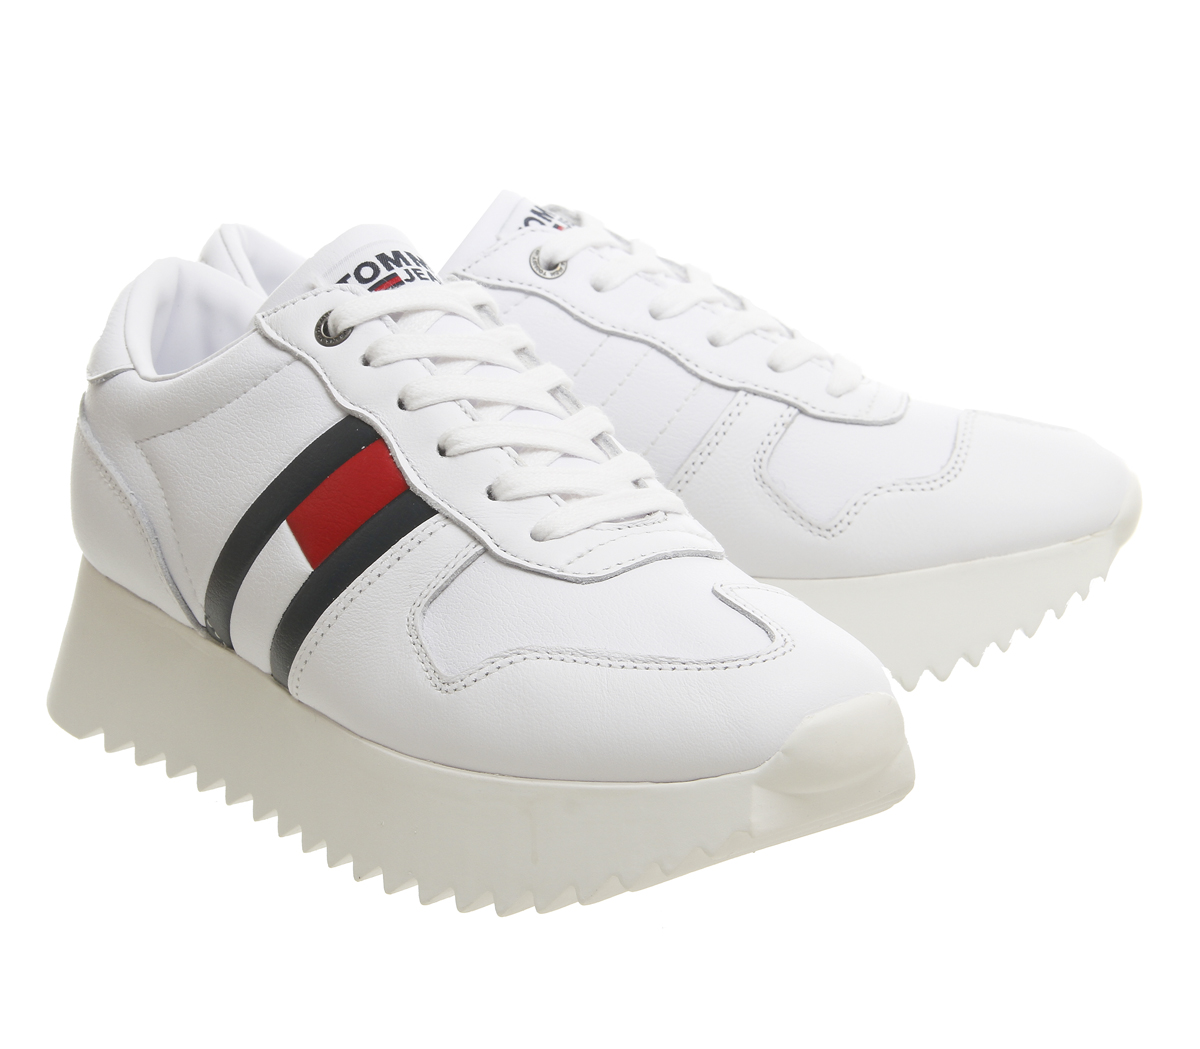 a4d422a575b Para mujer Tommy Hilfiger Alto Cleated Tenis Blanco Rojo Azul ...